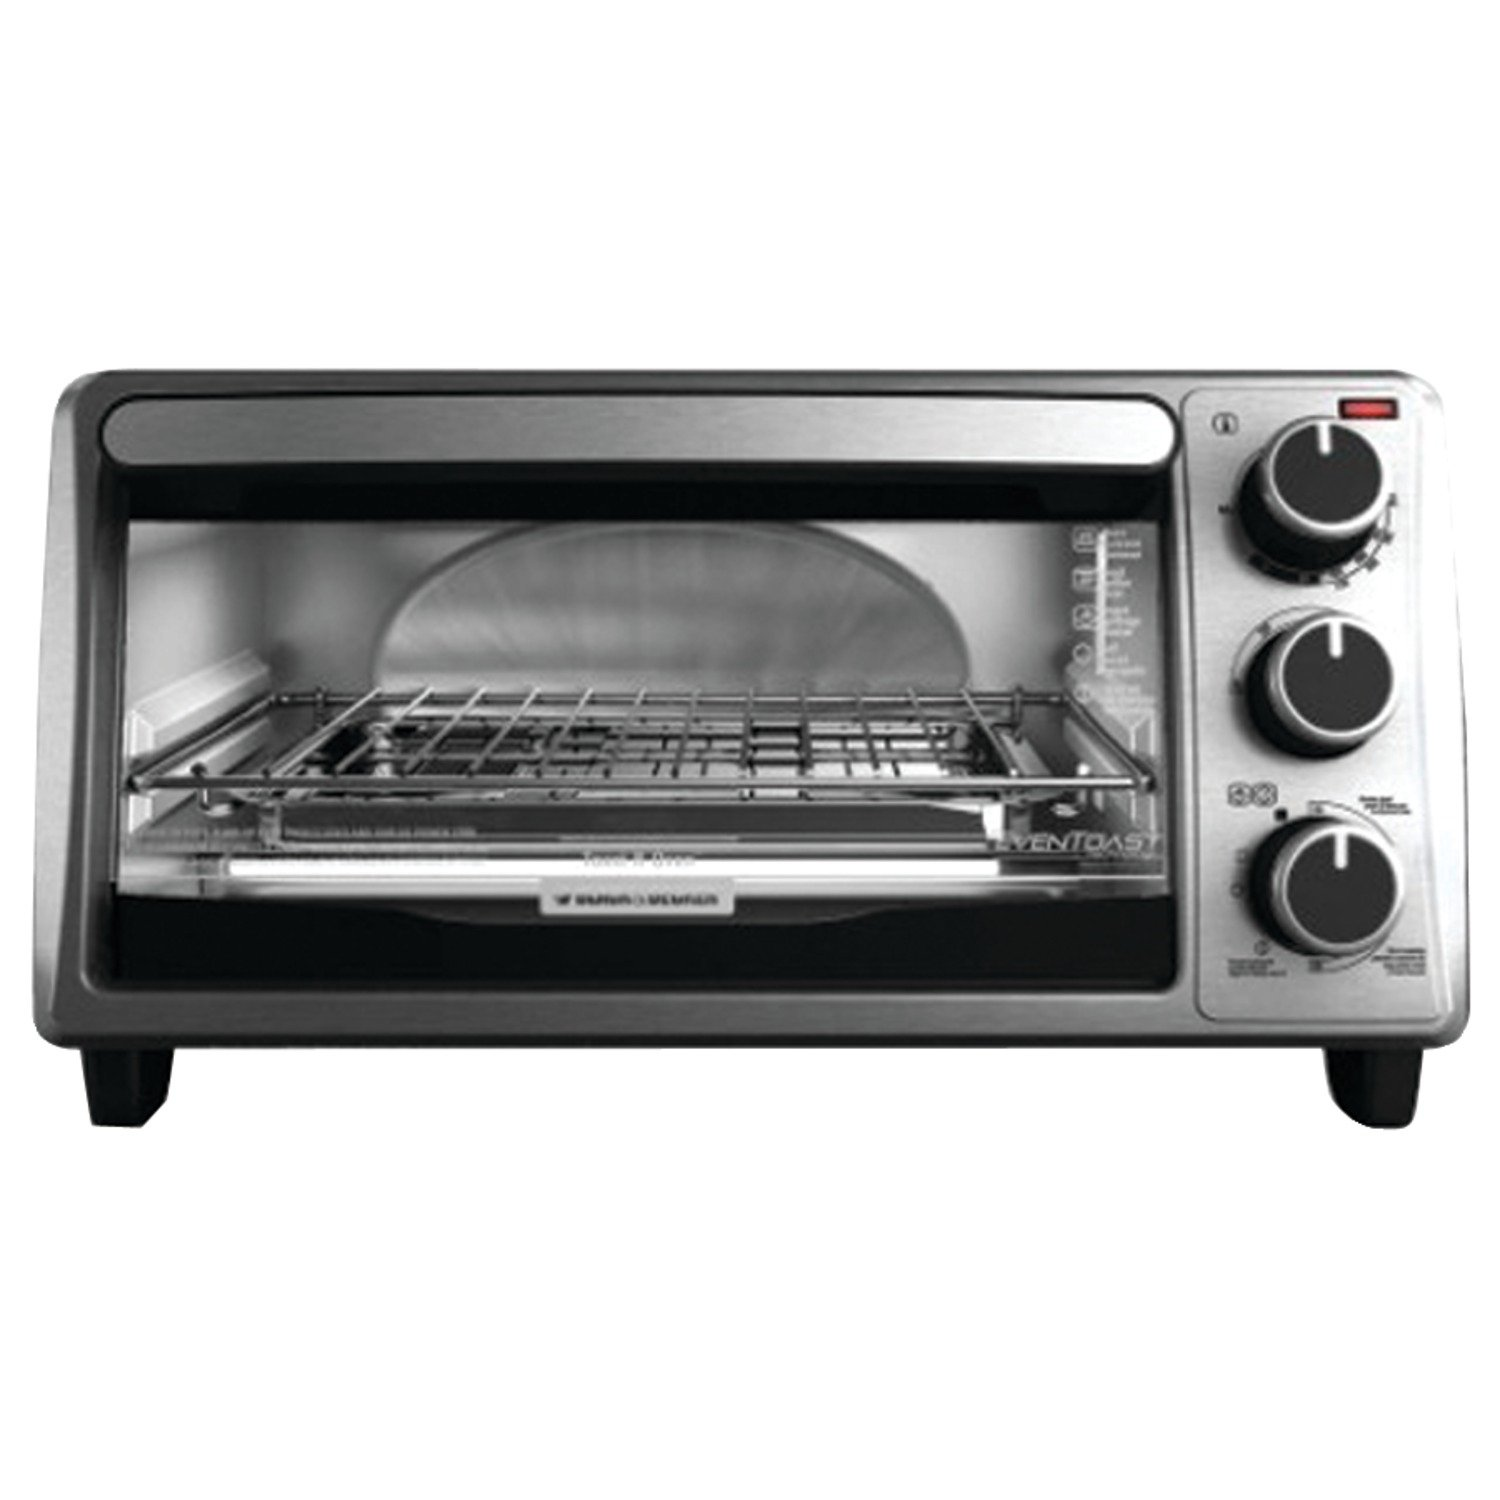 BLACK+DECKER TO1303SB 4-Slice Toaster Oven, Silver